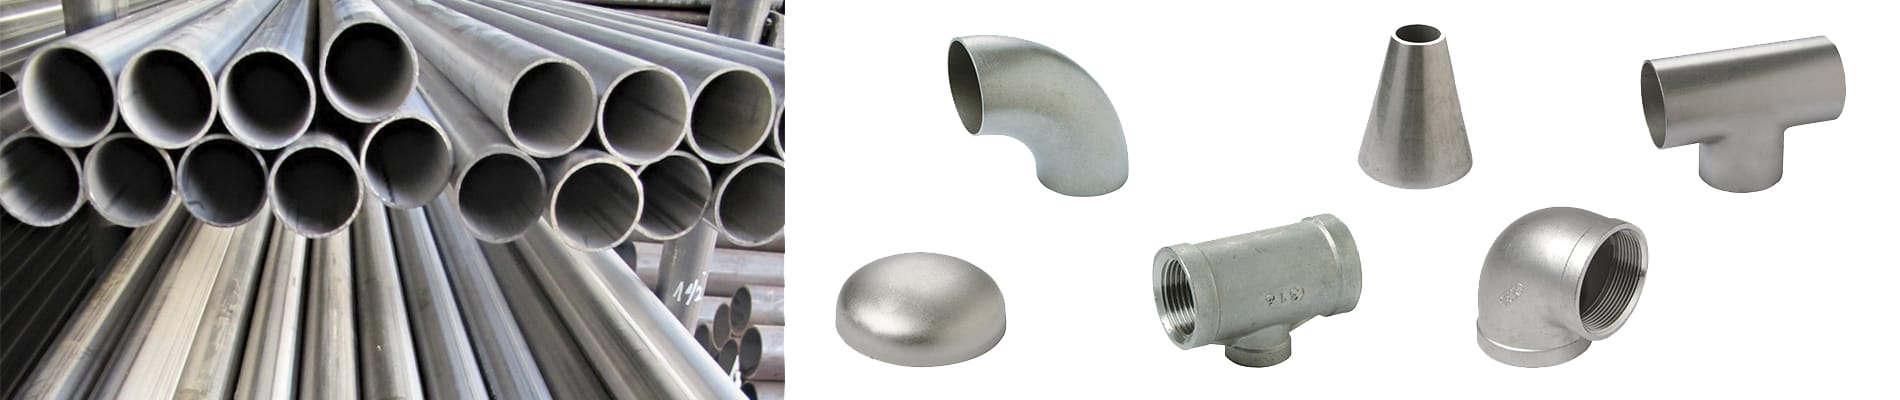 Stainless steel tubes and accessories